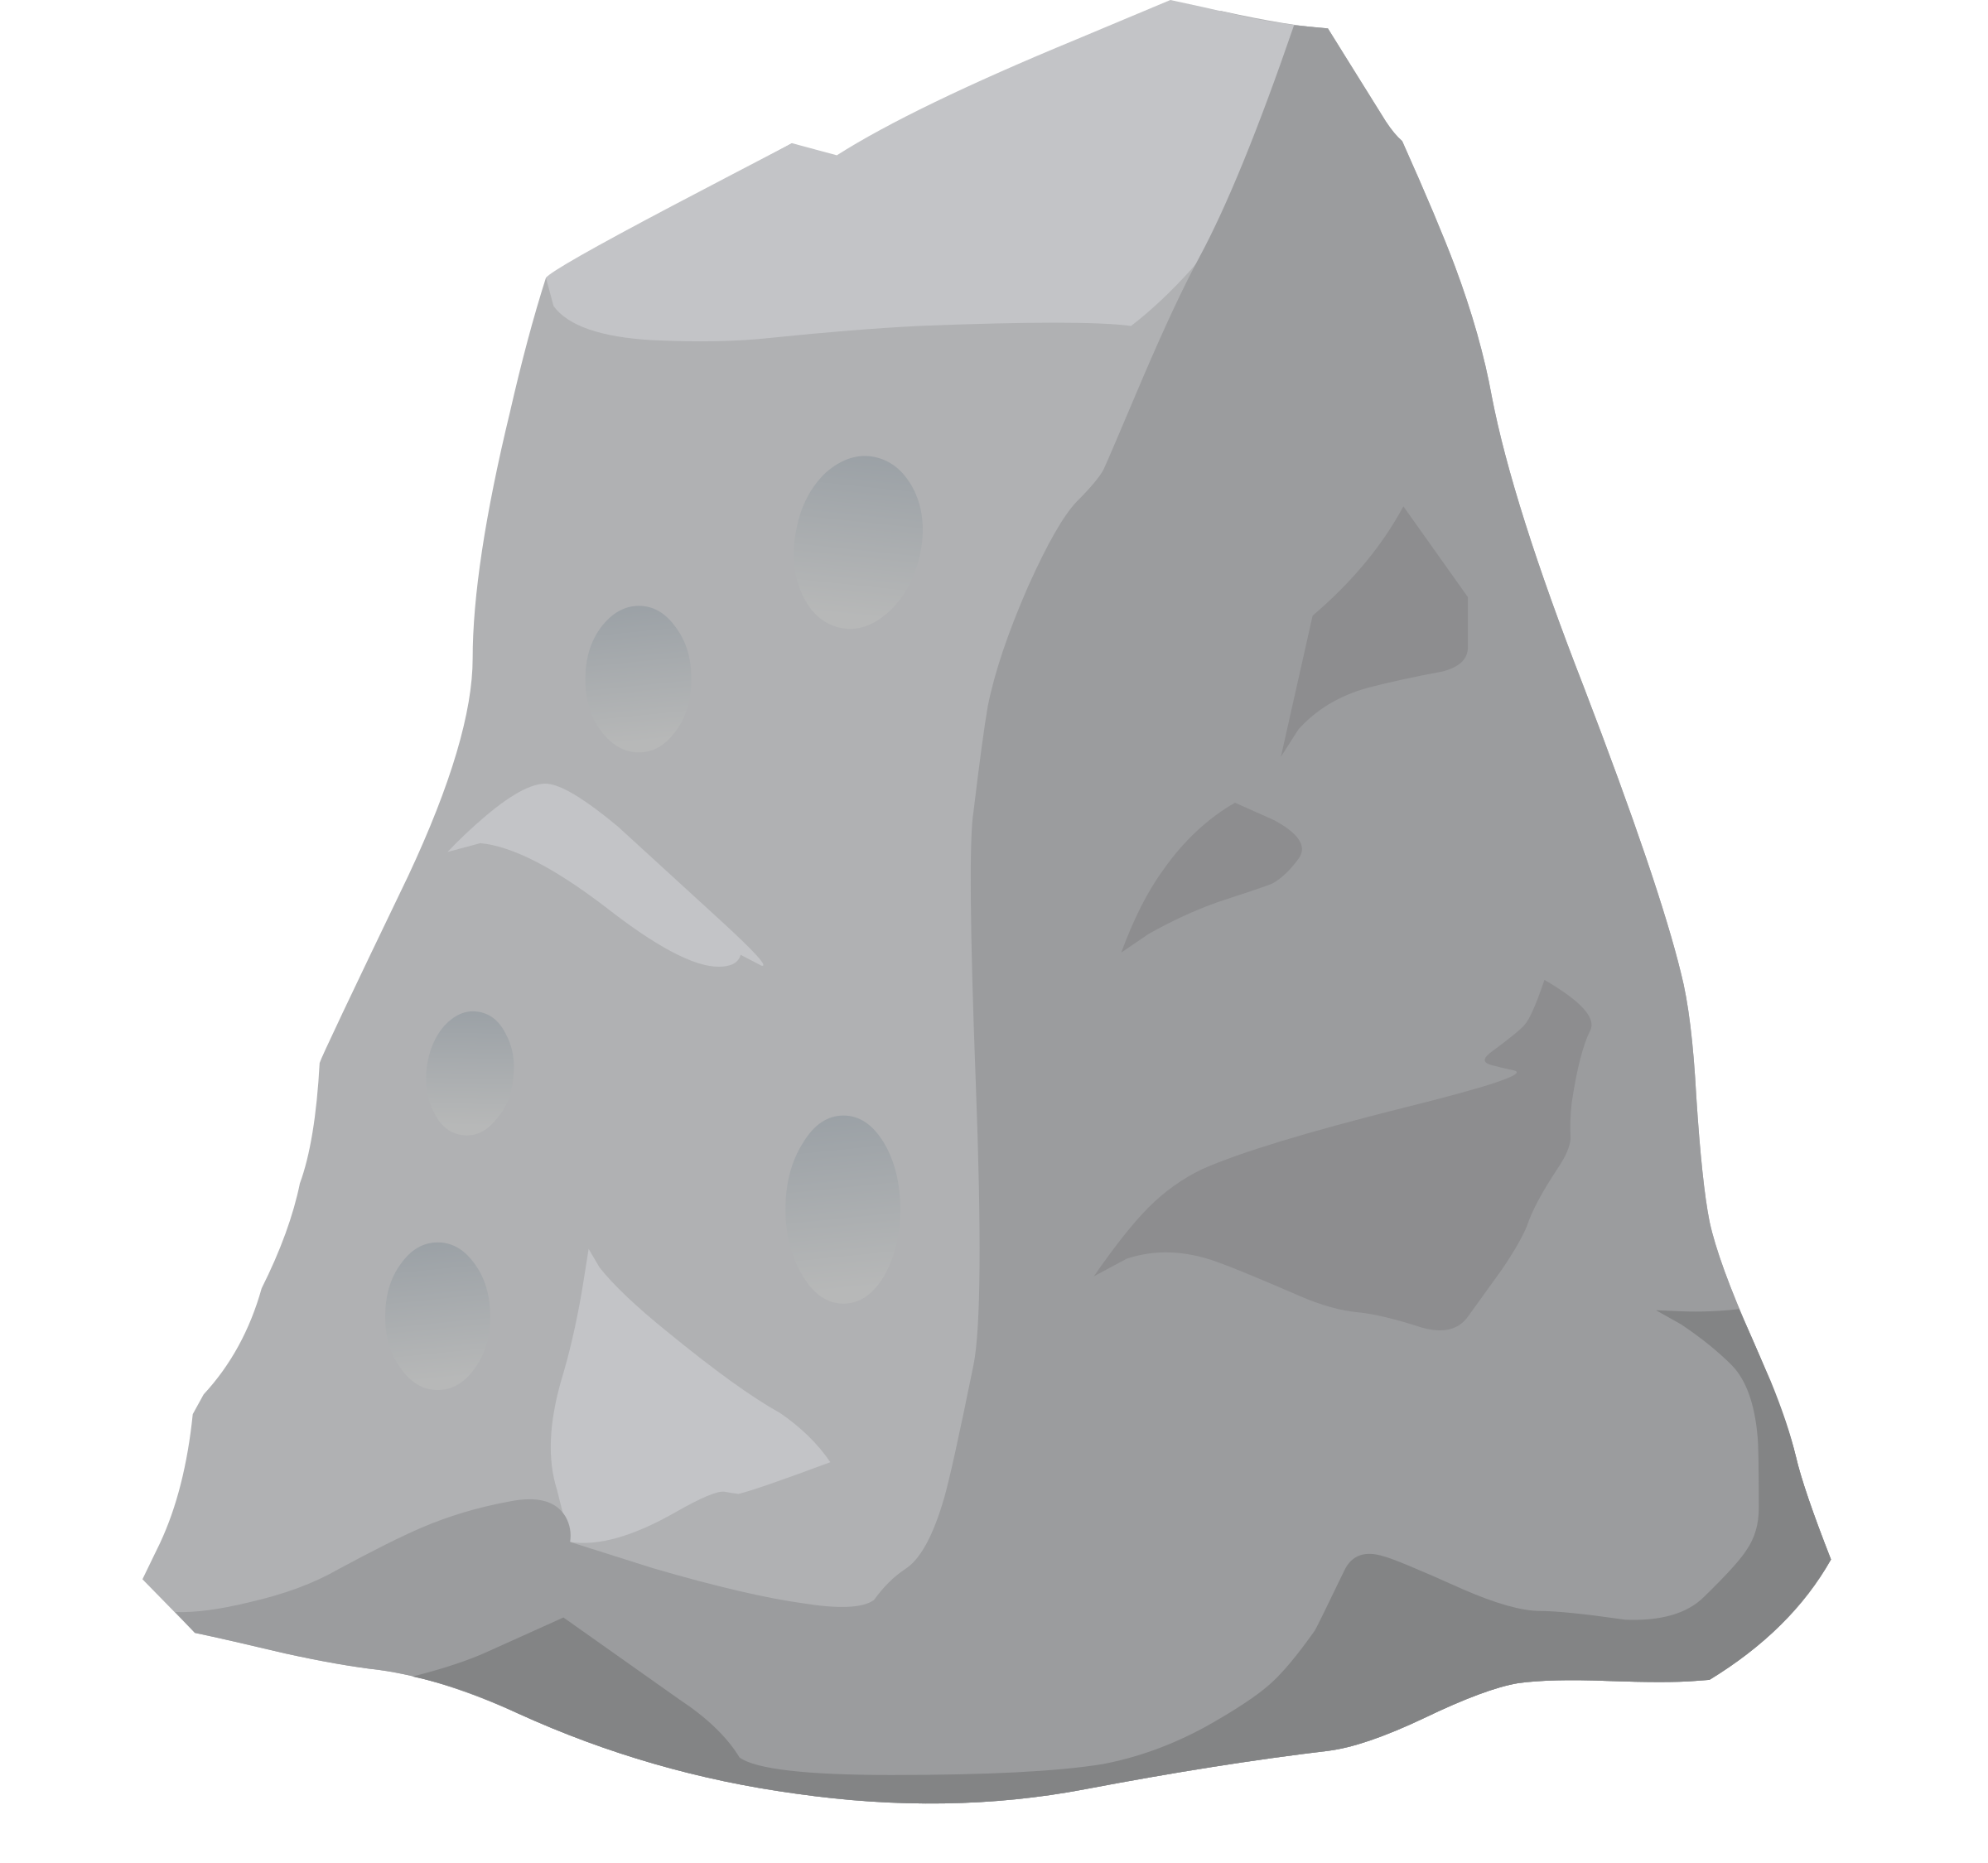 transparent rocks sketch